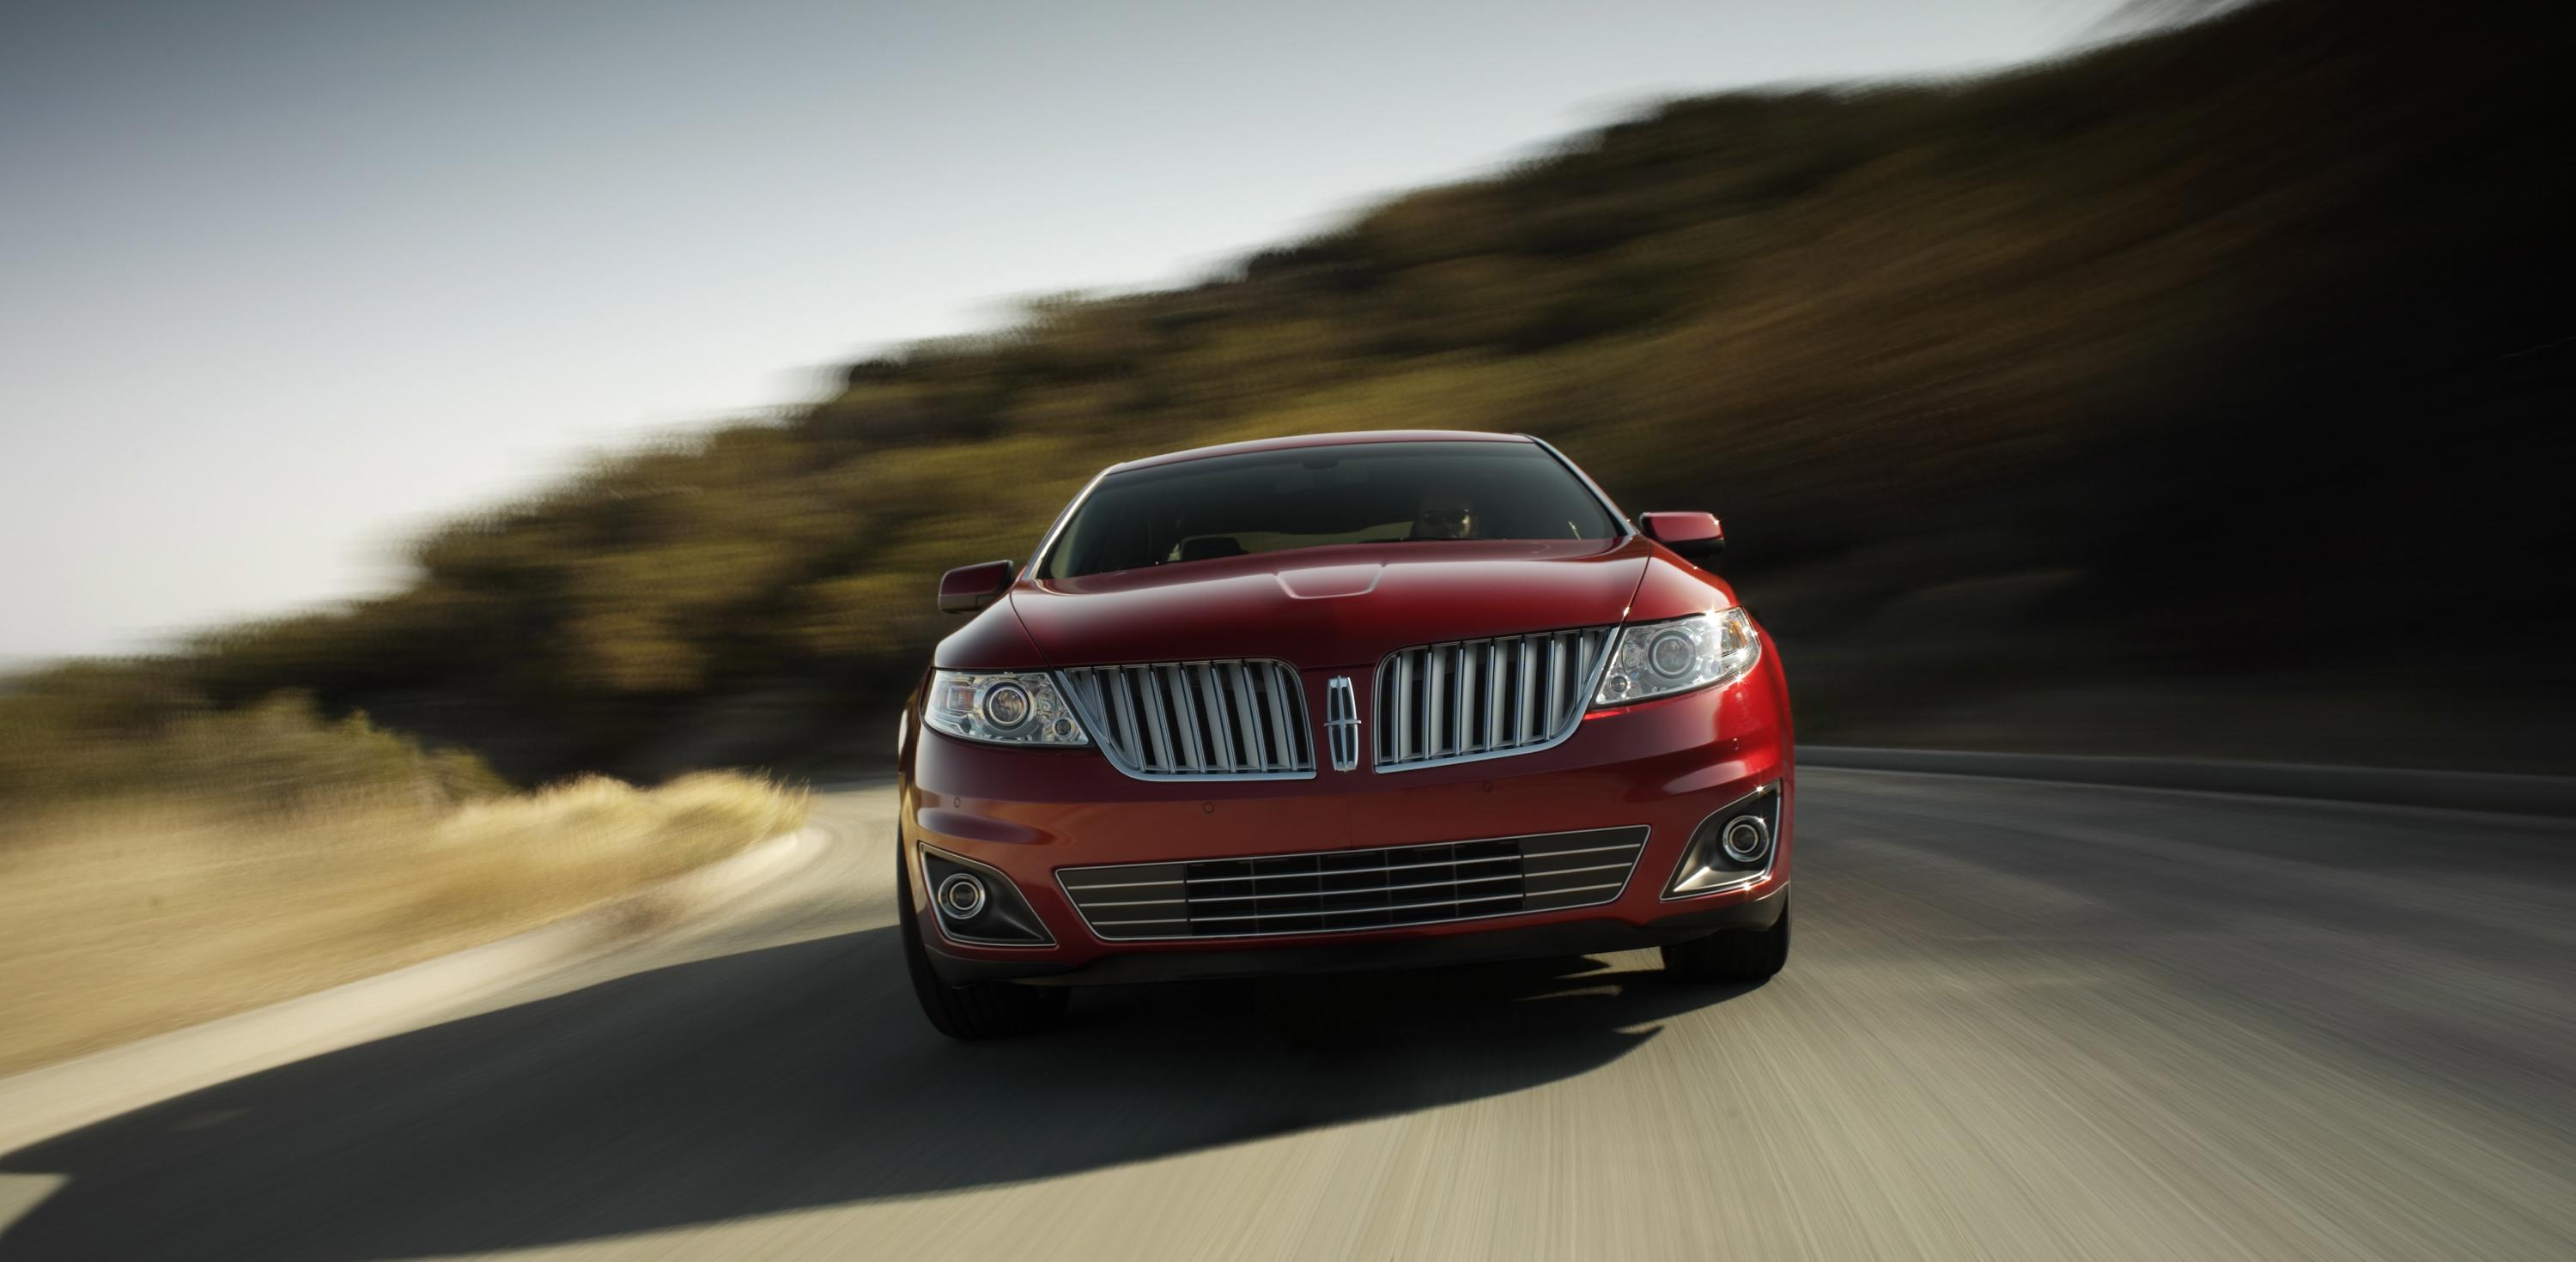 2009 Lincoln MKS | Top Speed. »